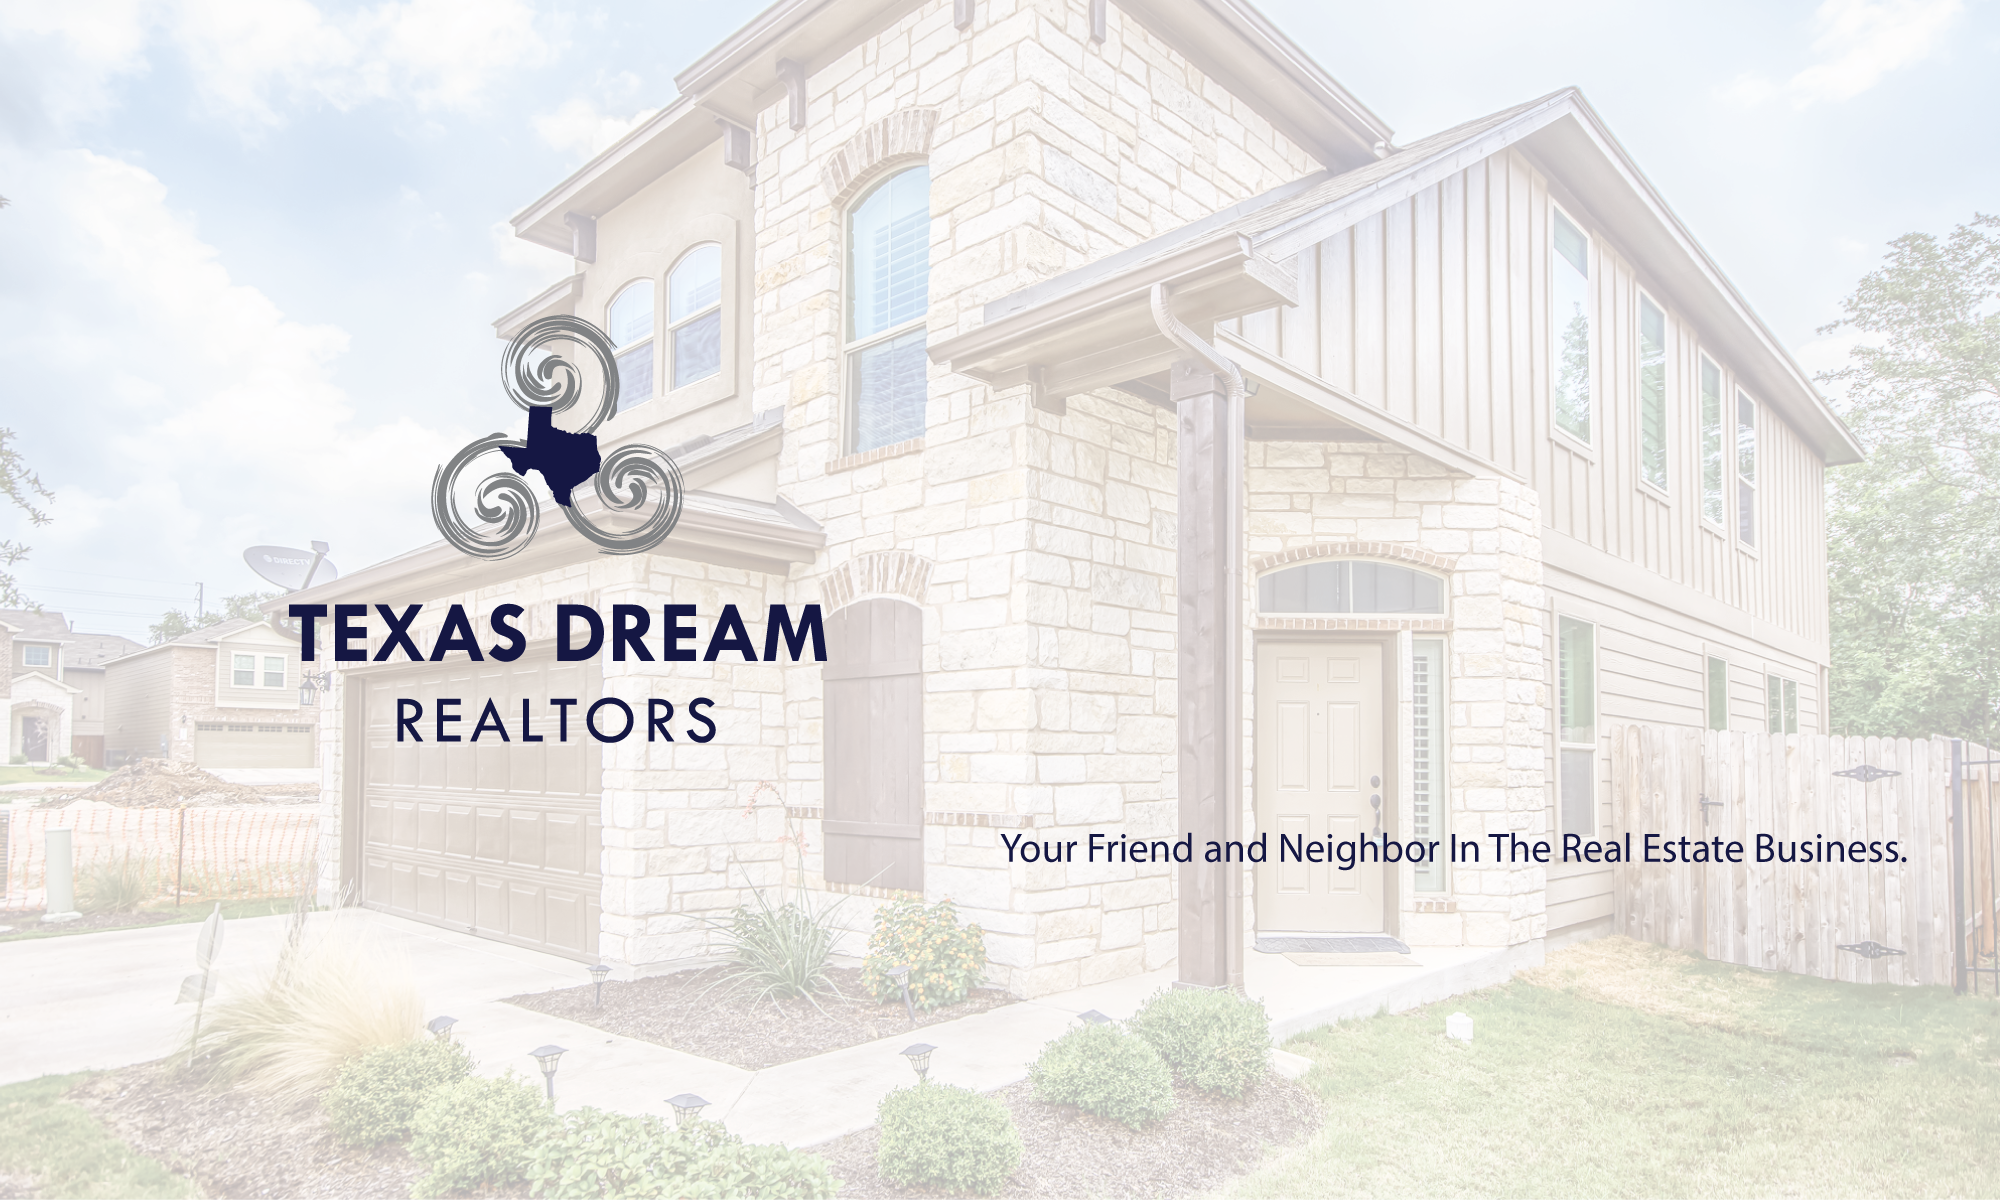 Texas Dream Realtors